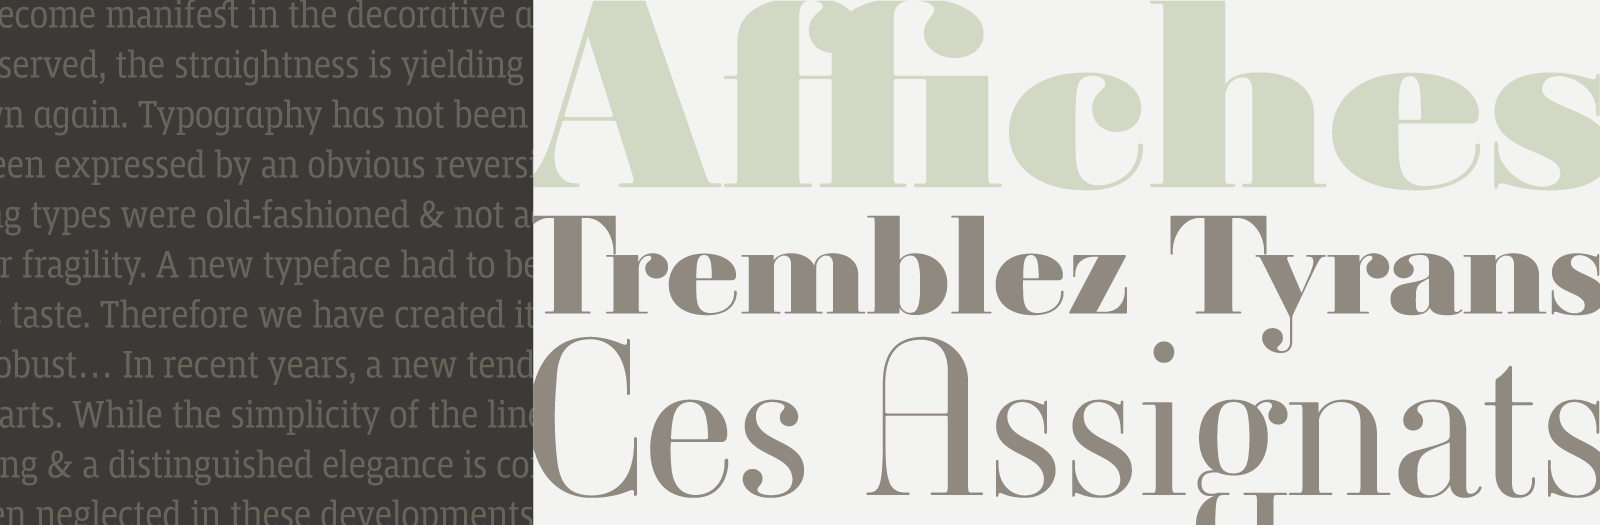 Mislab + Ambroise by Typofonderie